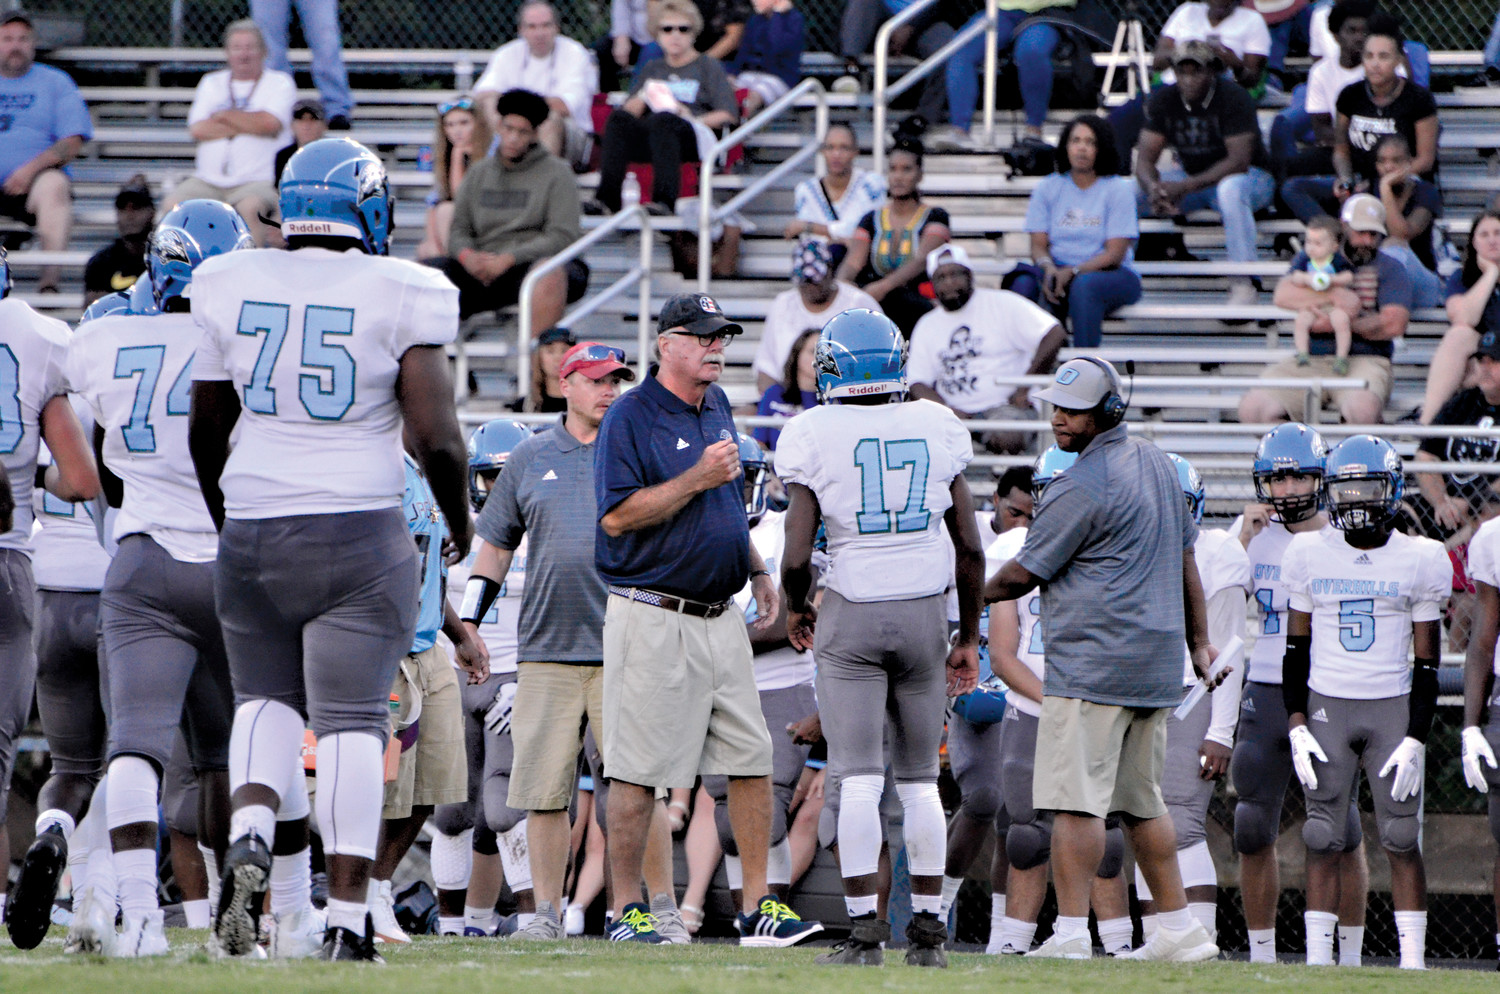 Last year, the Overhills Jaguars football program broke their coaching staff up between junior varsity and varsity. Head varsity football coach Mark Kirk didn't like how that worked out. So, Kirk, shown here at center, changed that, and made it so all varsity coaches help with the JV team, in order for the players to become more familiar with leadership.